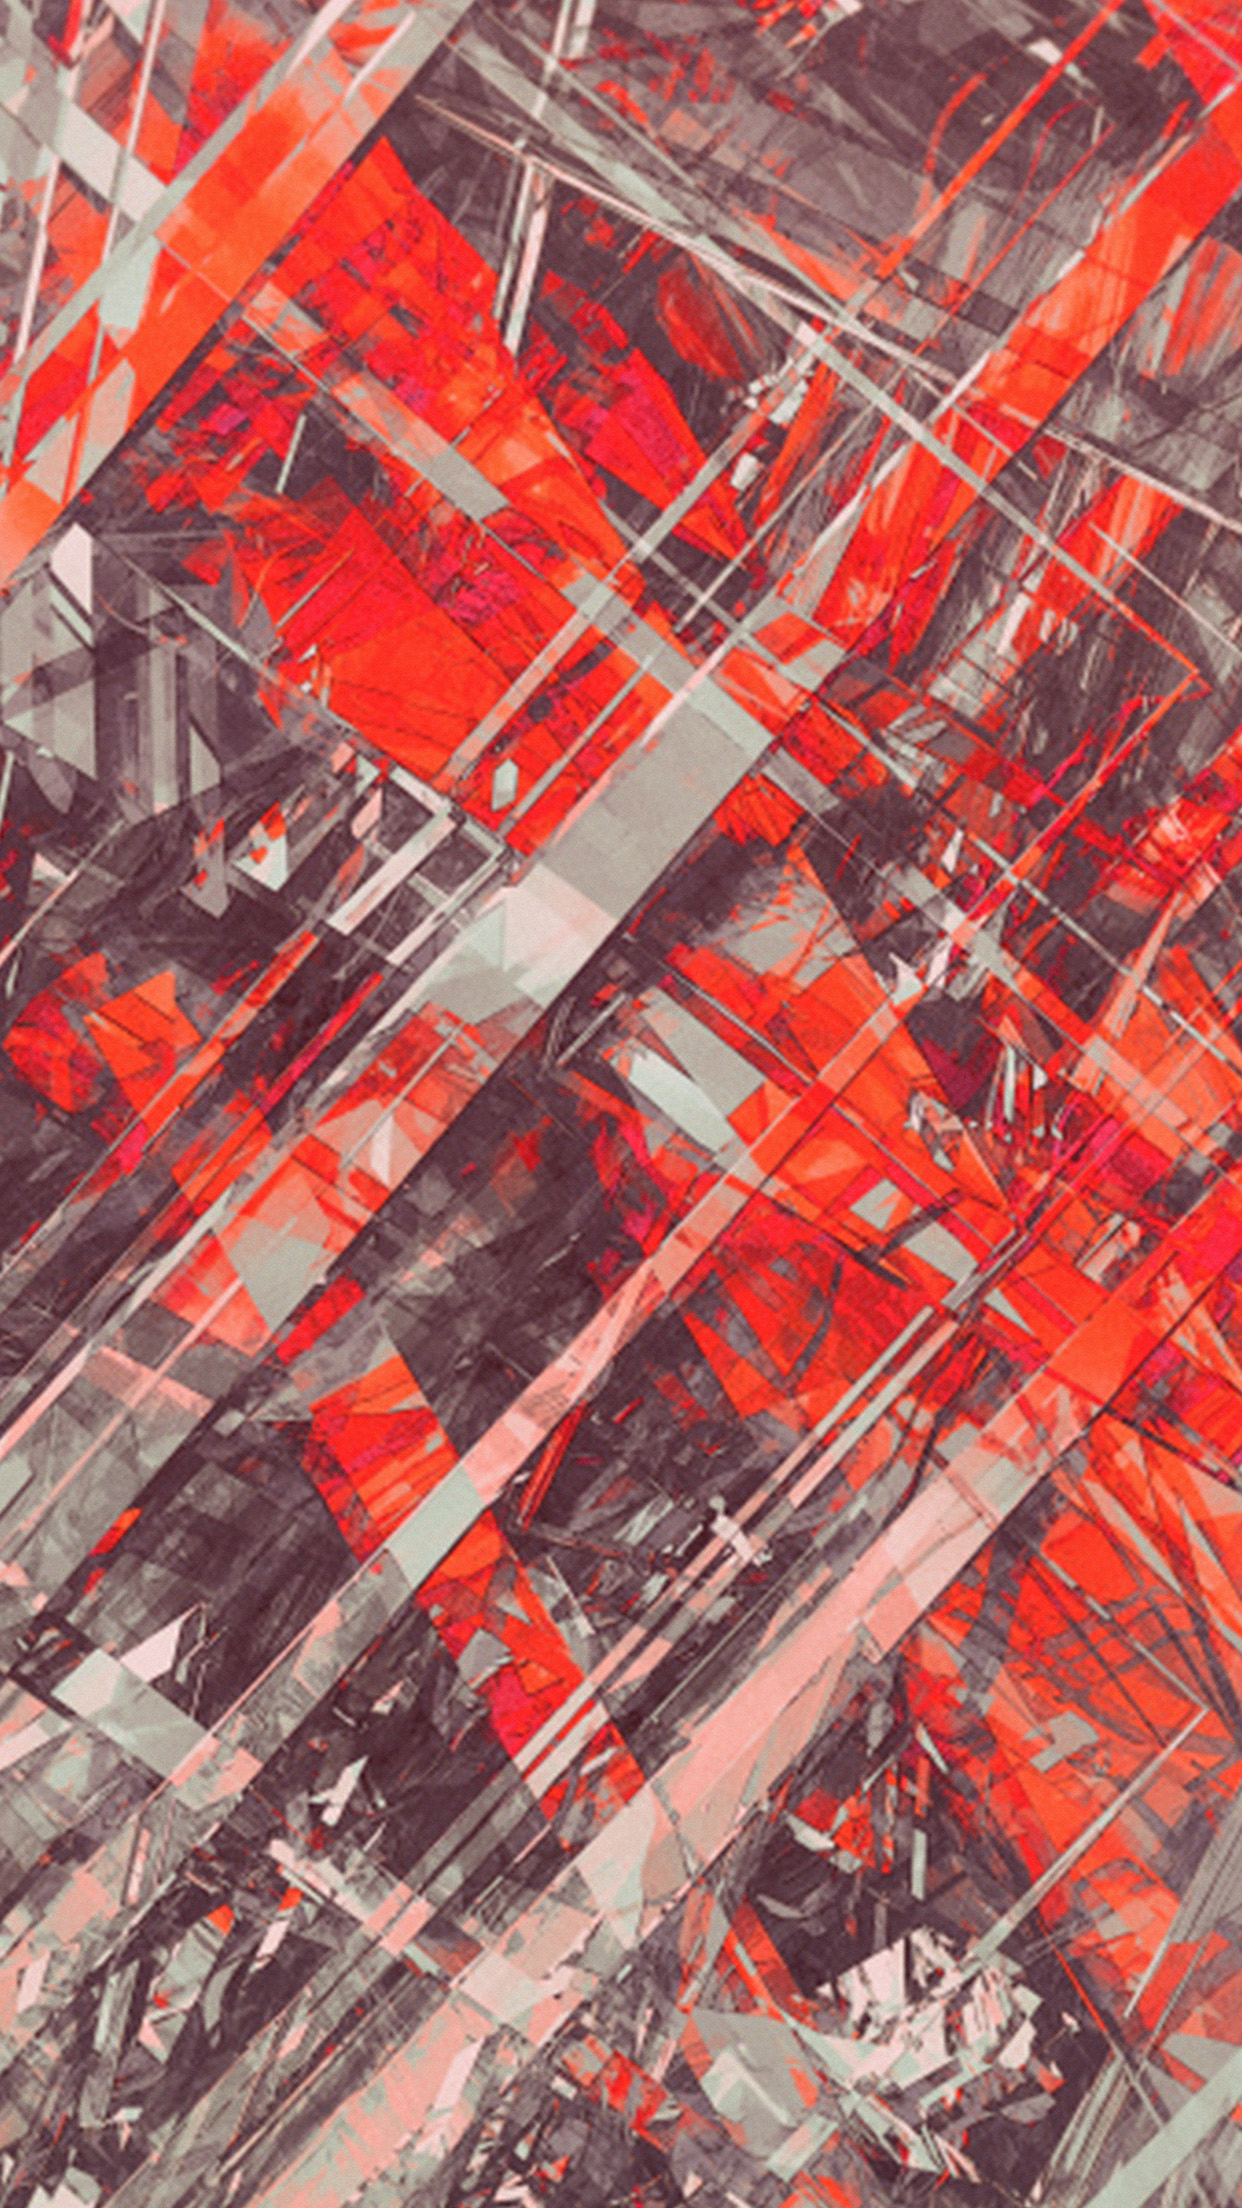 Winter Wallpaper Iphone 7 Papers Co Iphone Wallpaper Az31 Red Atelier Olschinsky